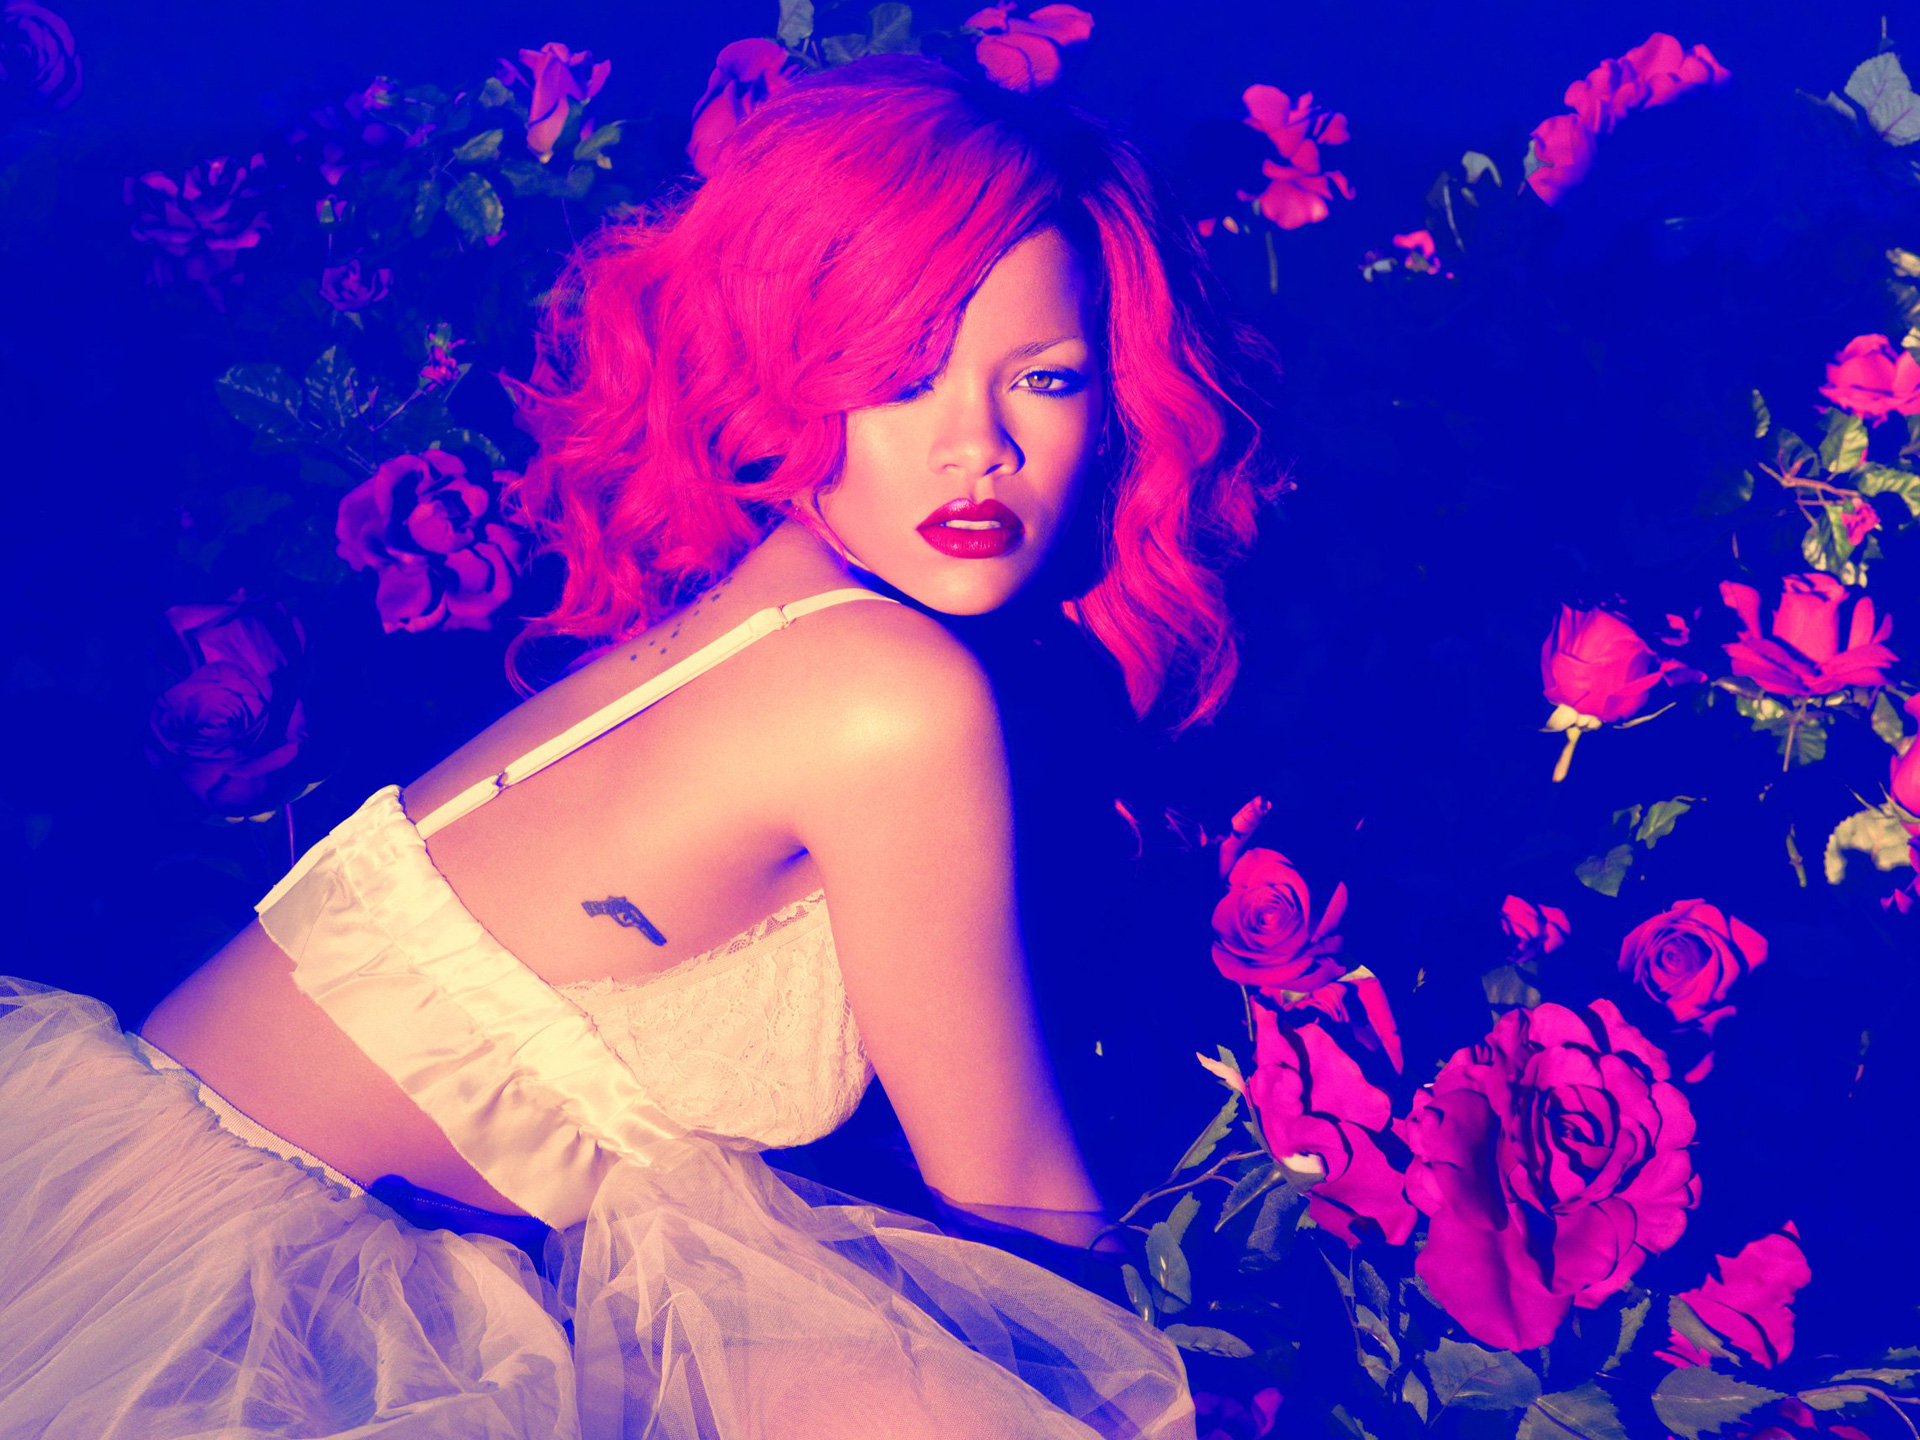 rihanna only one girl in the world скачать